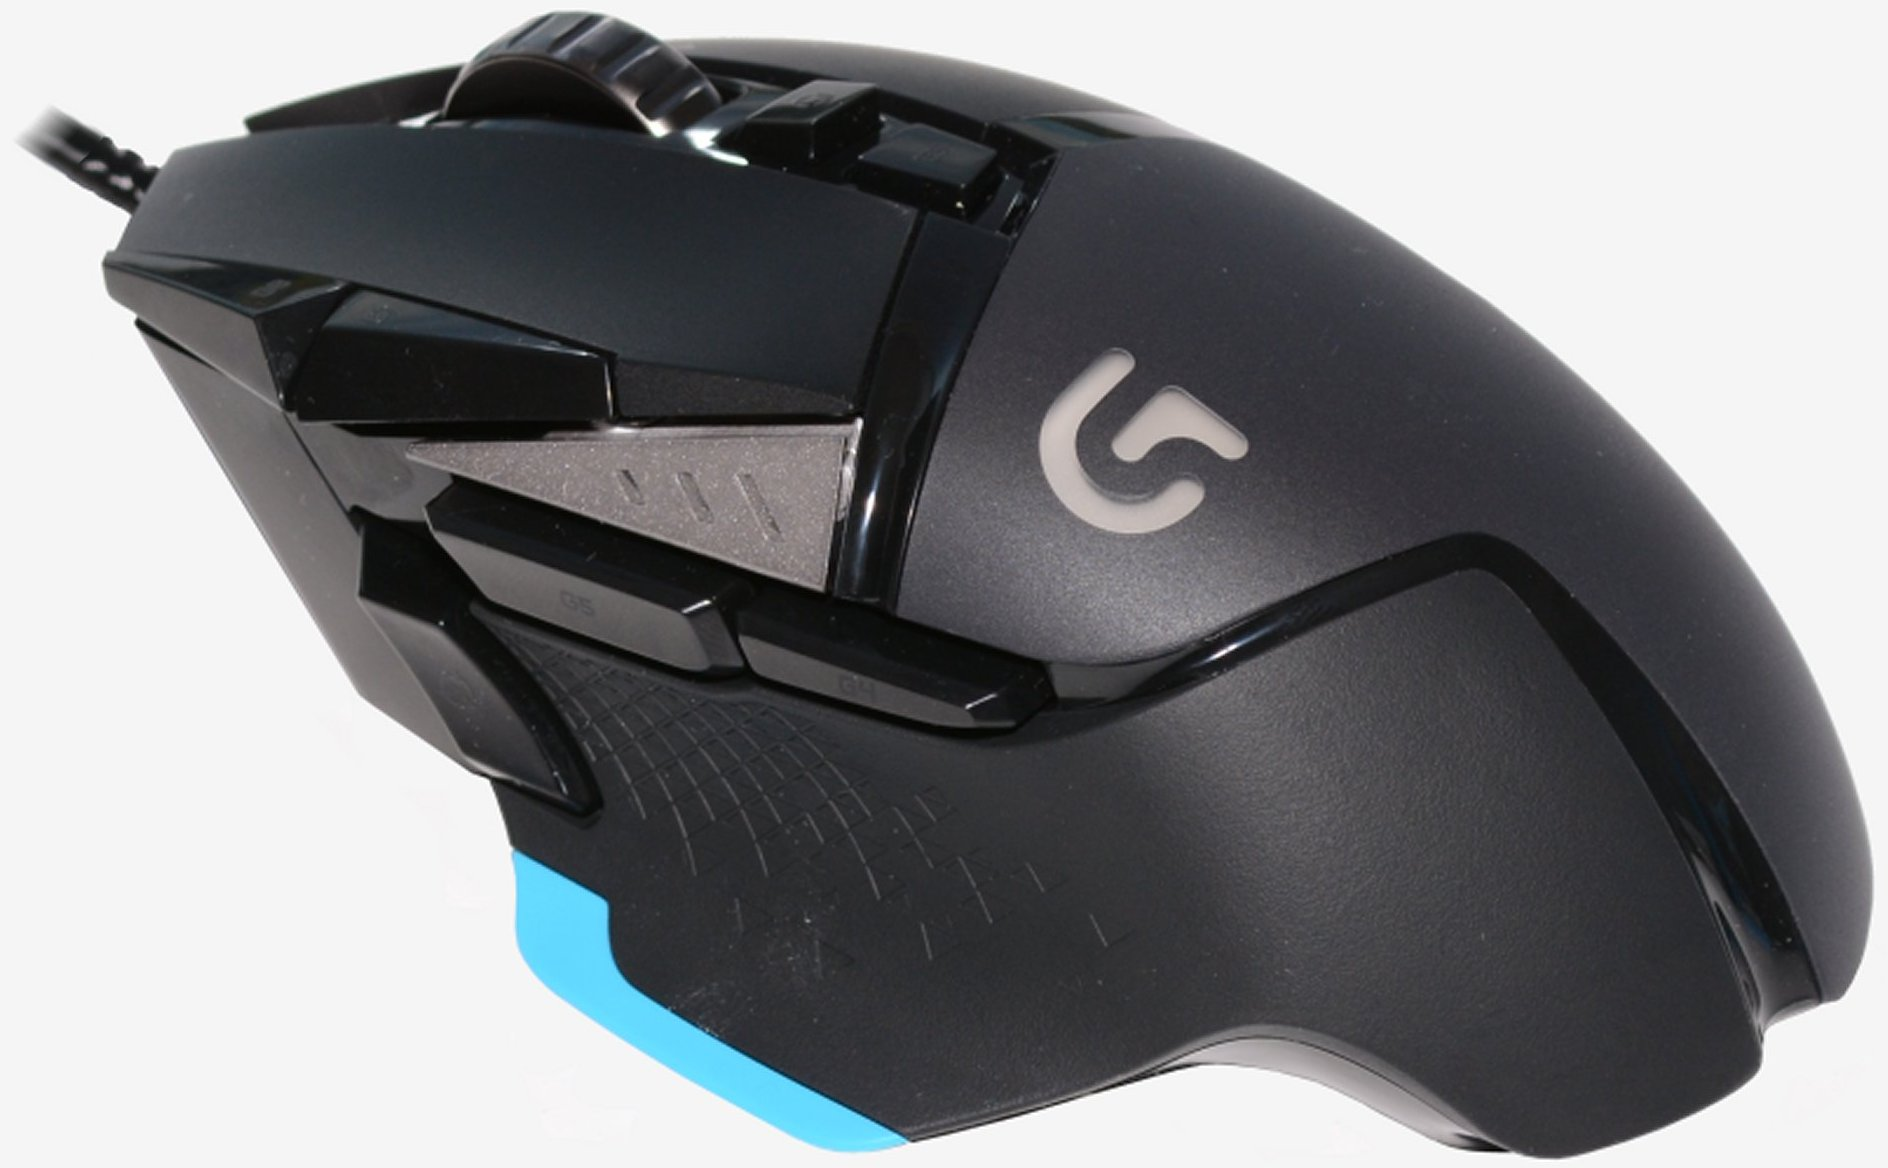 Photo of [UPDATE-Material Video]-G502 Proteus Core, cel mai bun mouse de gaming produs vreodata de Logitech!